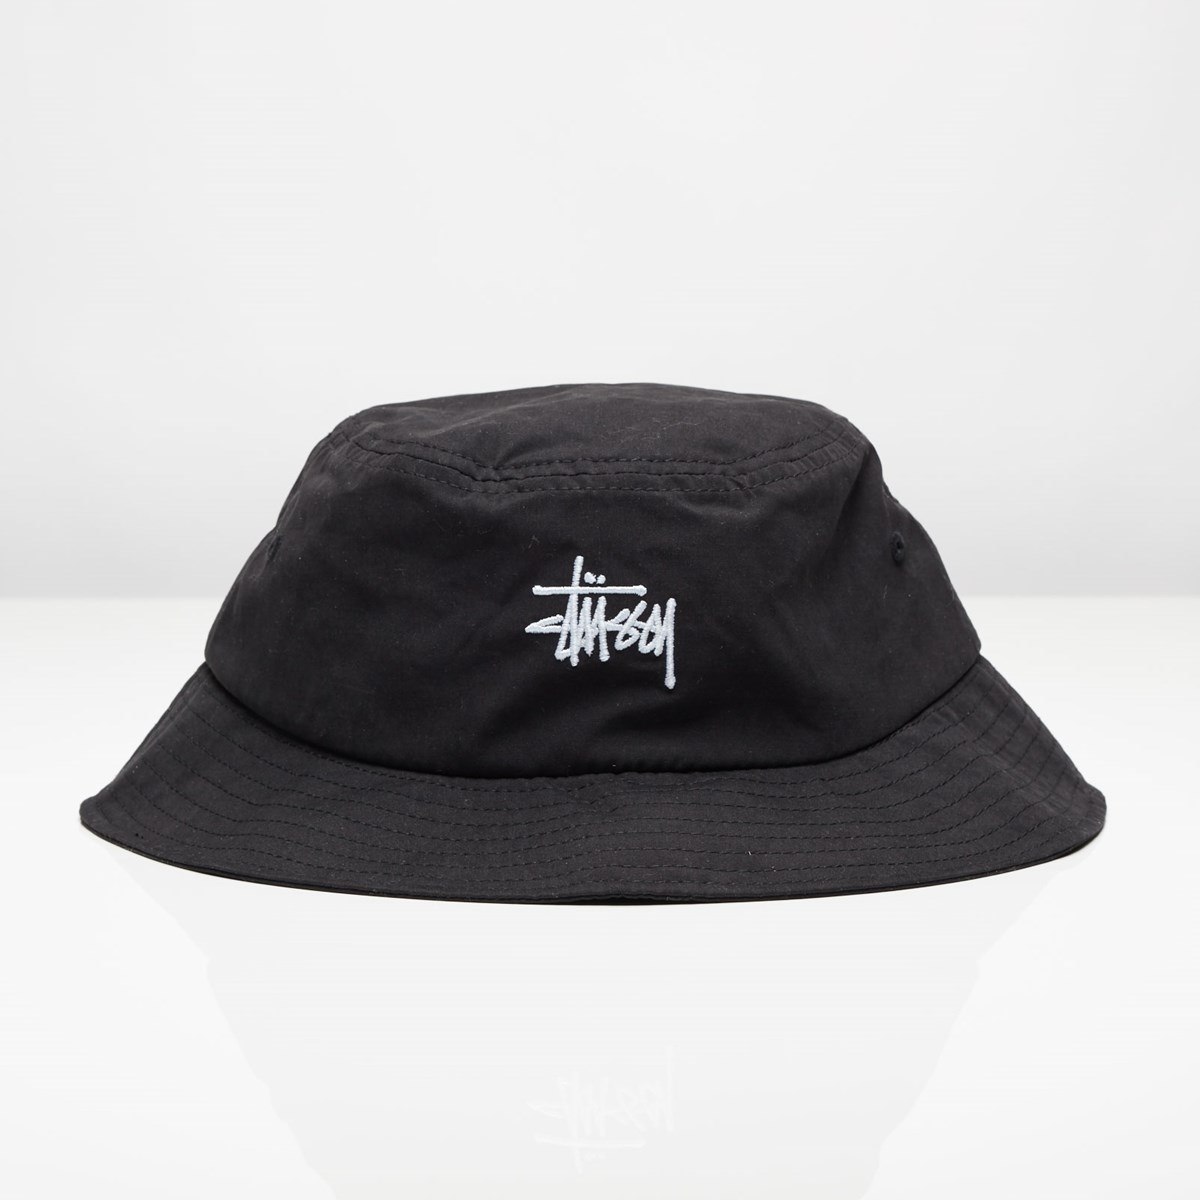 stussy bucket hat amazon - HD 1200×1200